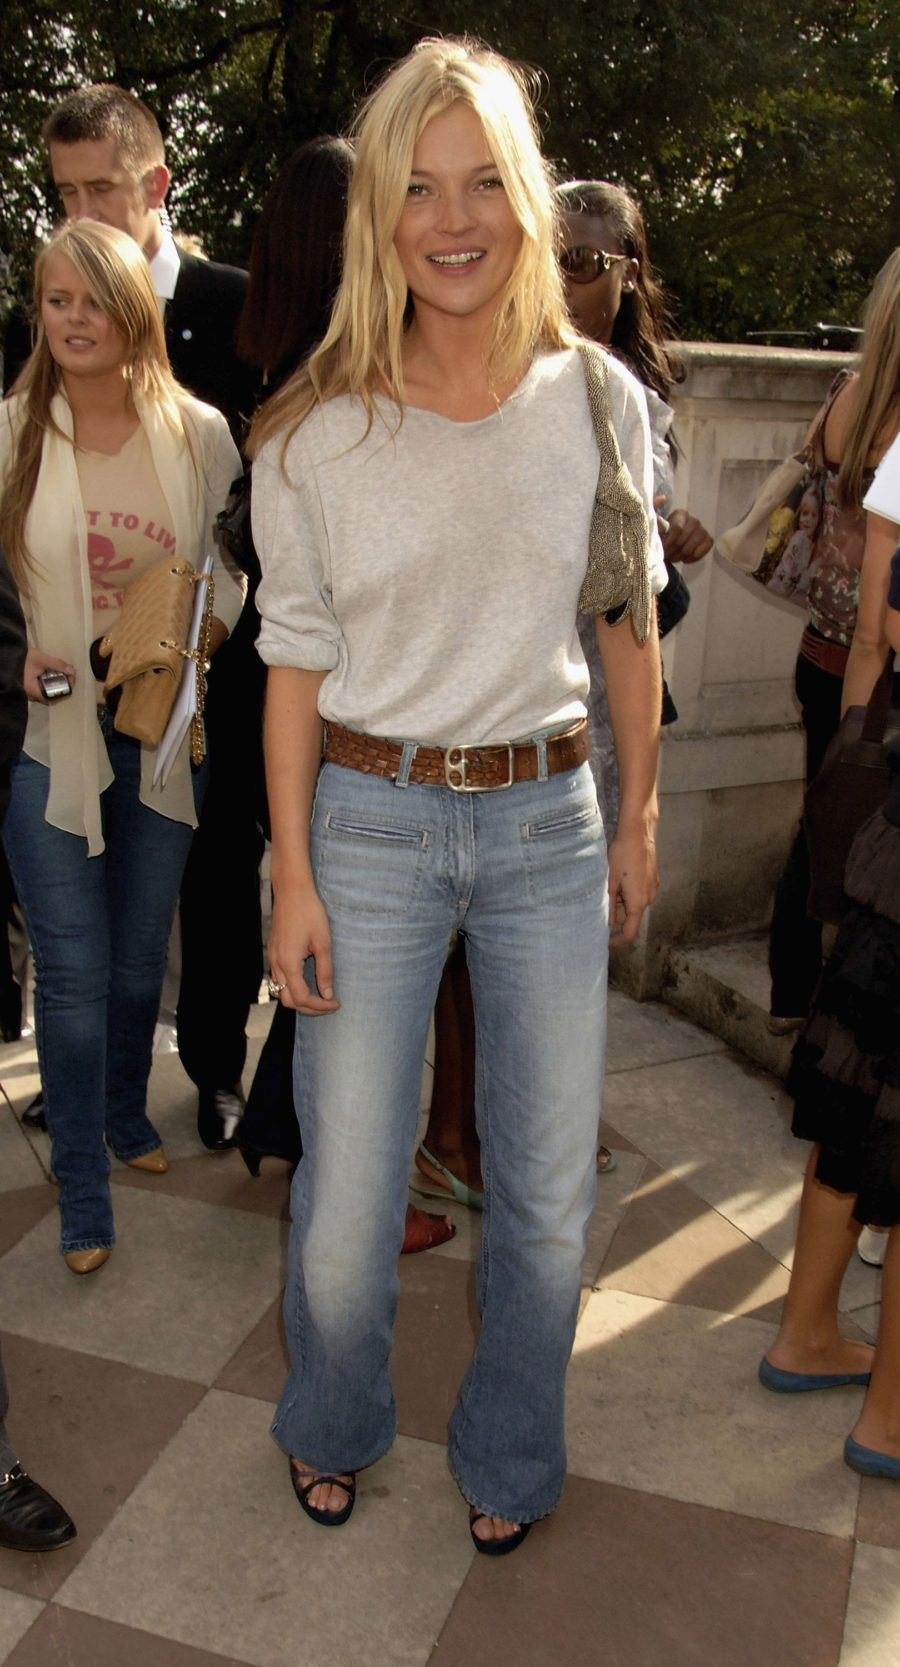 Classic Denim Styles With a Twist - Long flared jeans, kate moss jeans style // Notjessfashion.com